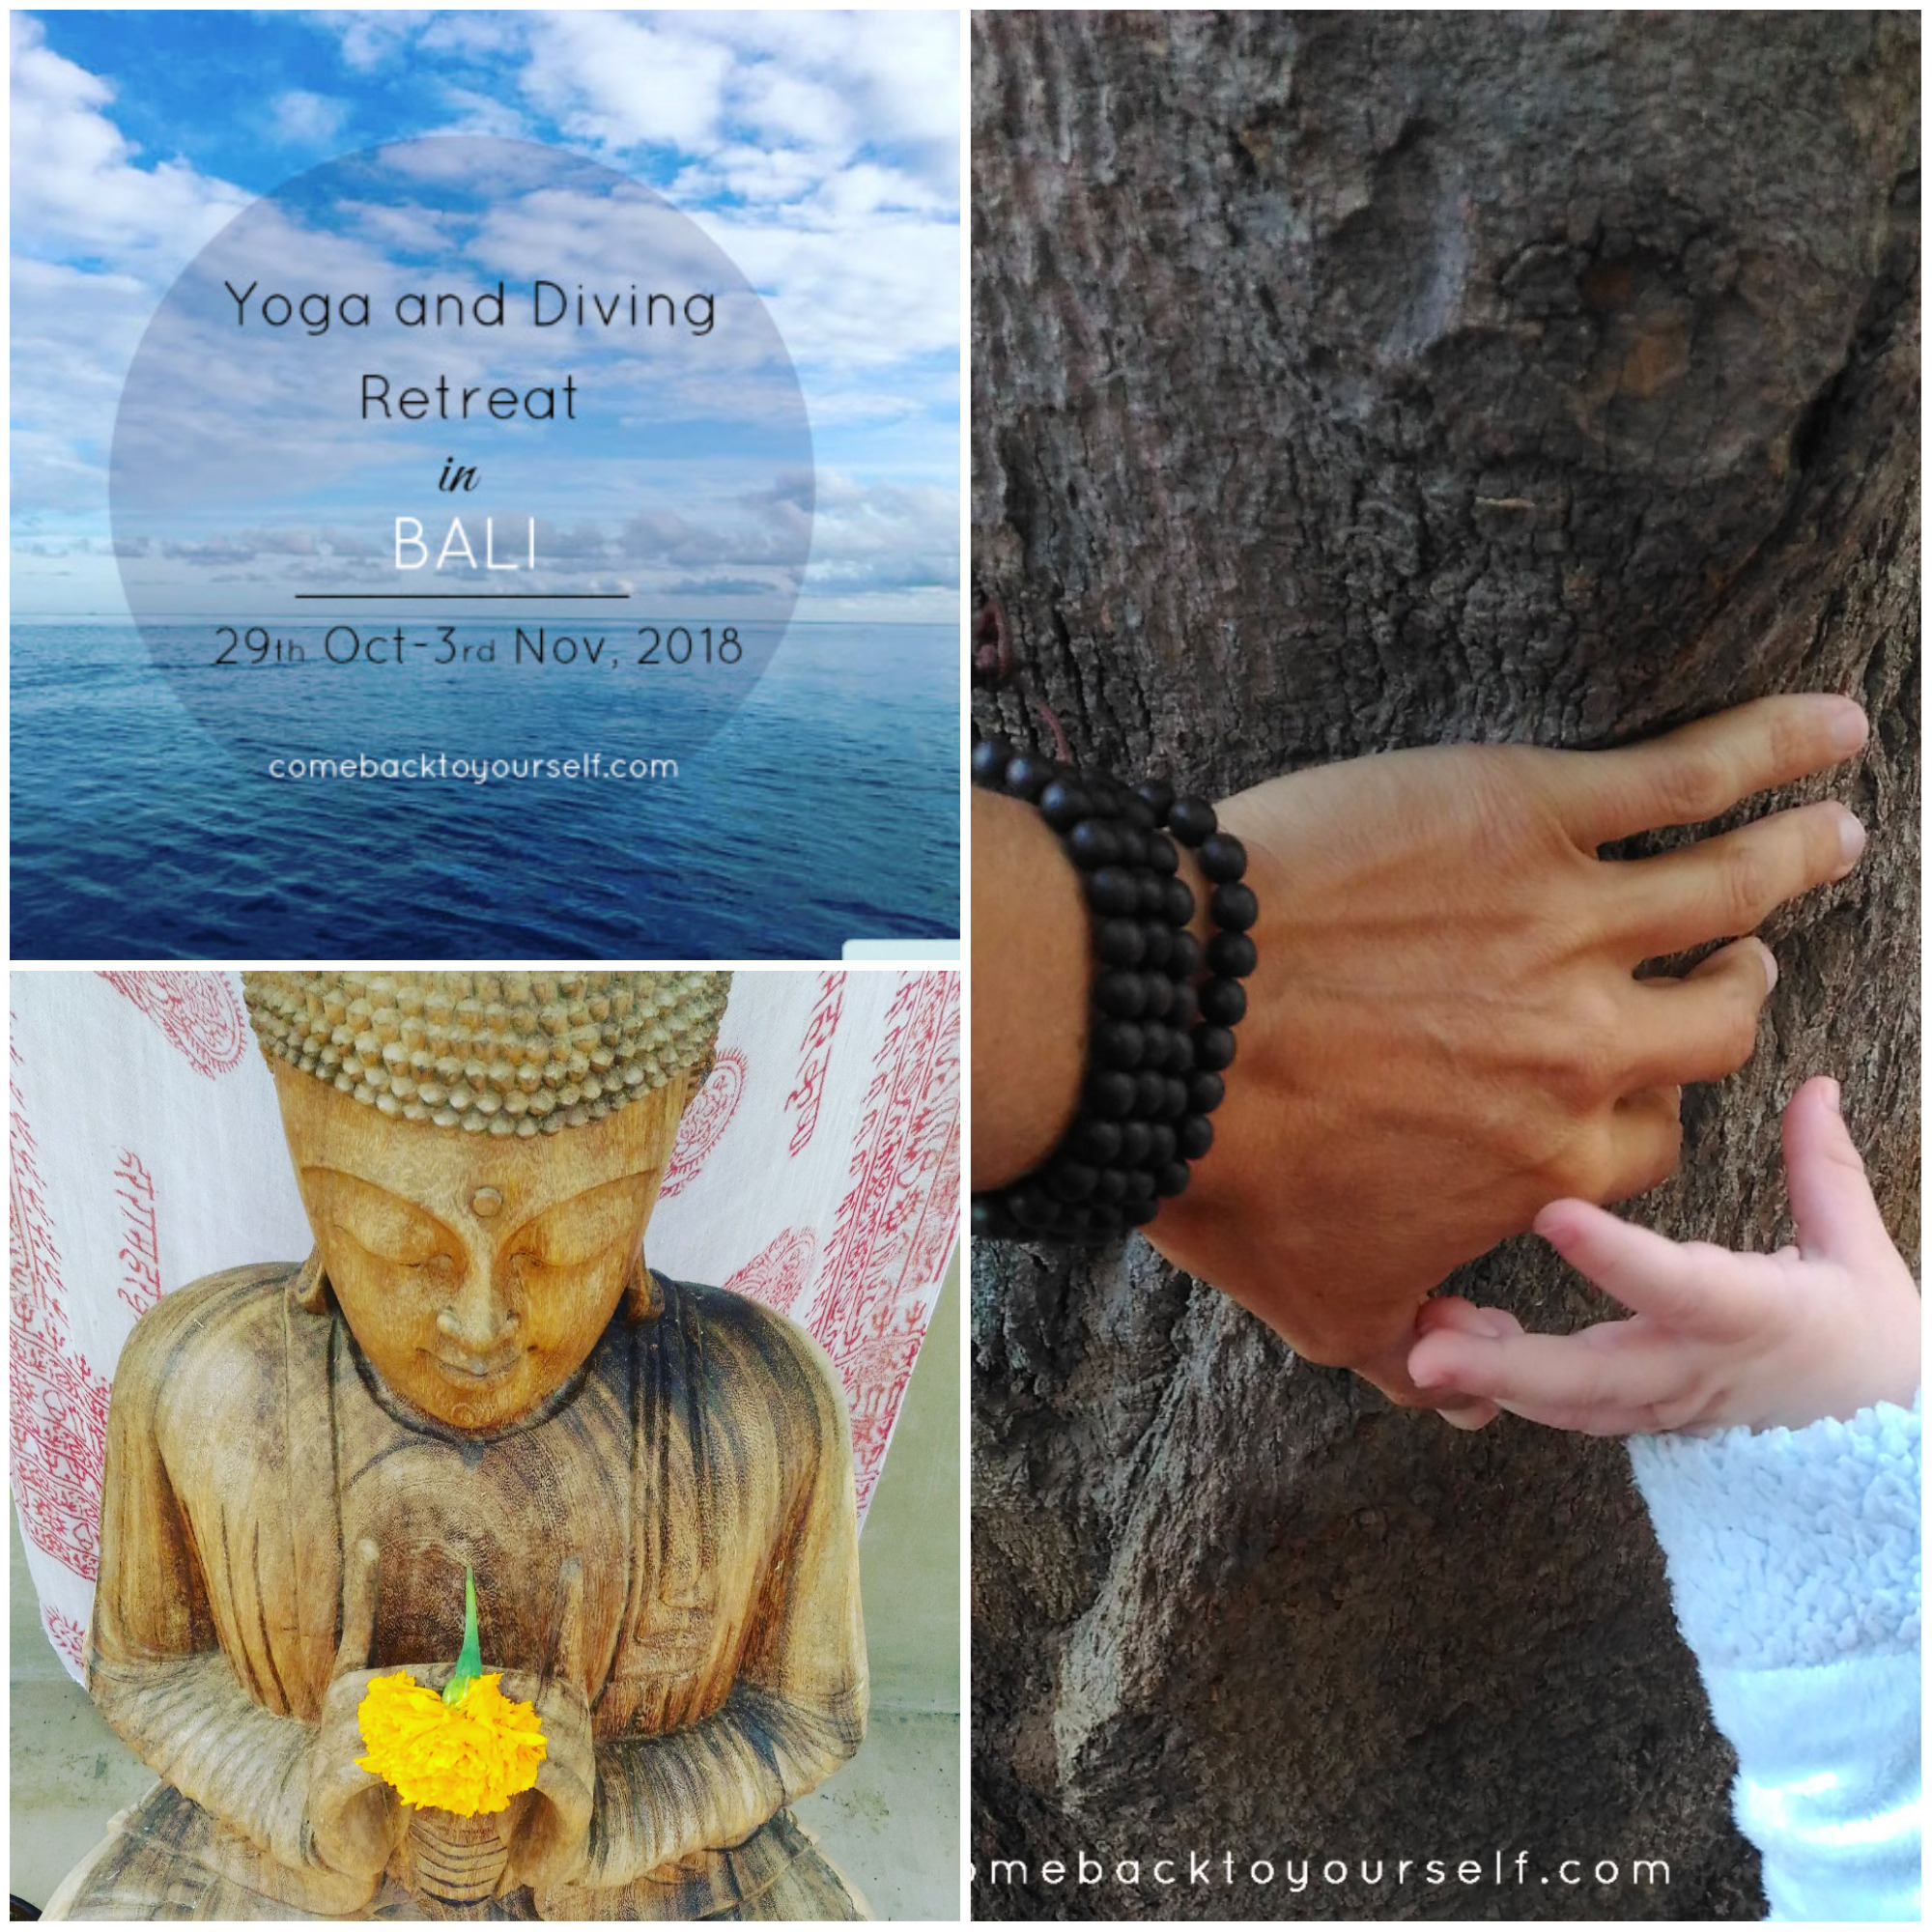 bali yoga diving retreat october 29, 2018 mindfulness come back to yourself retreats